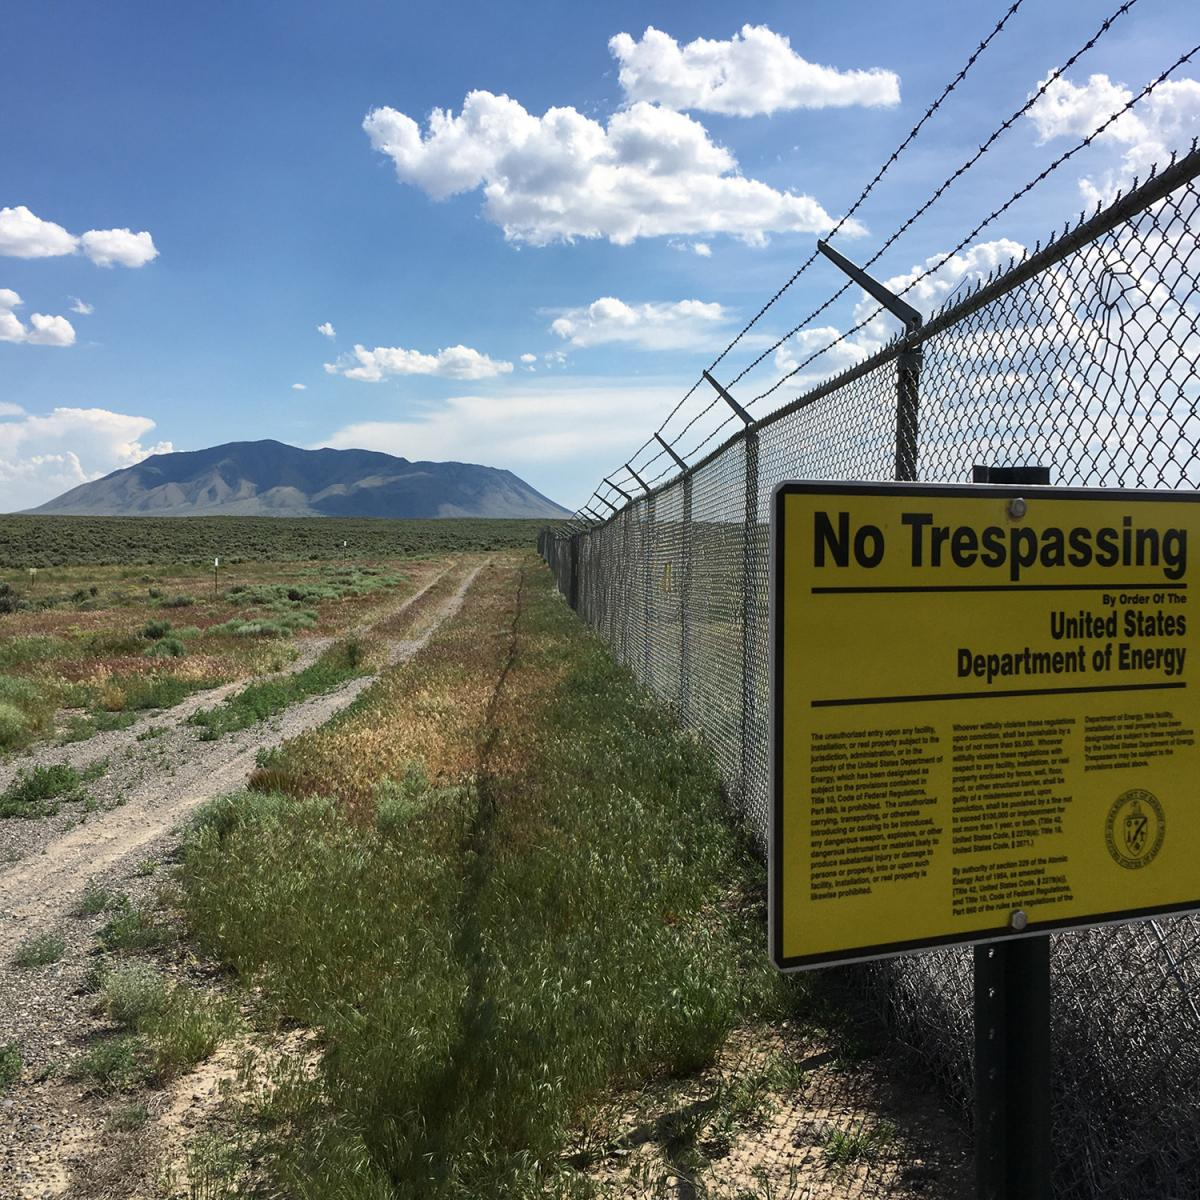 No trespassing sign at Department of Energy site